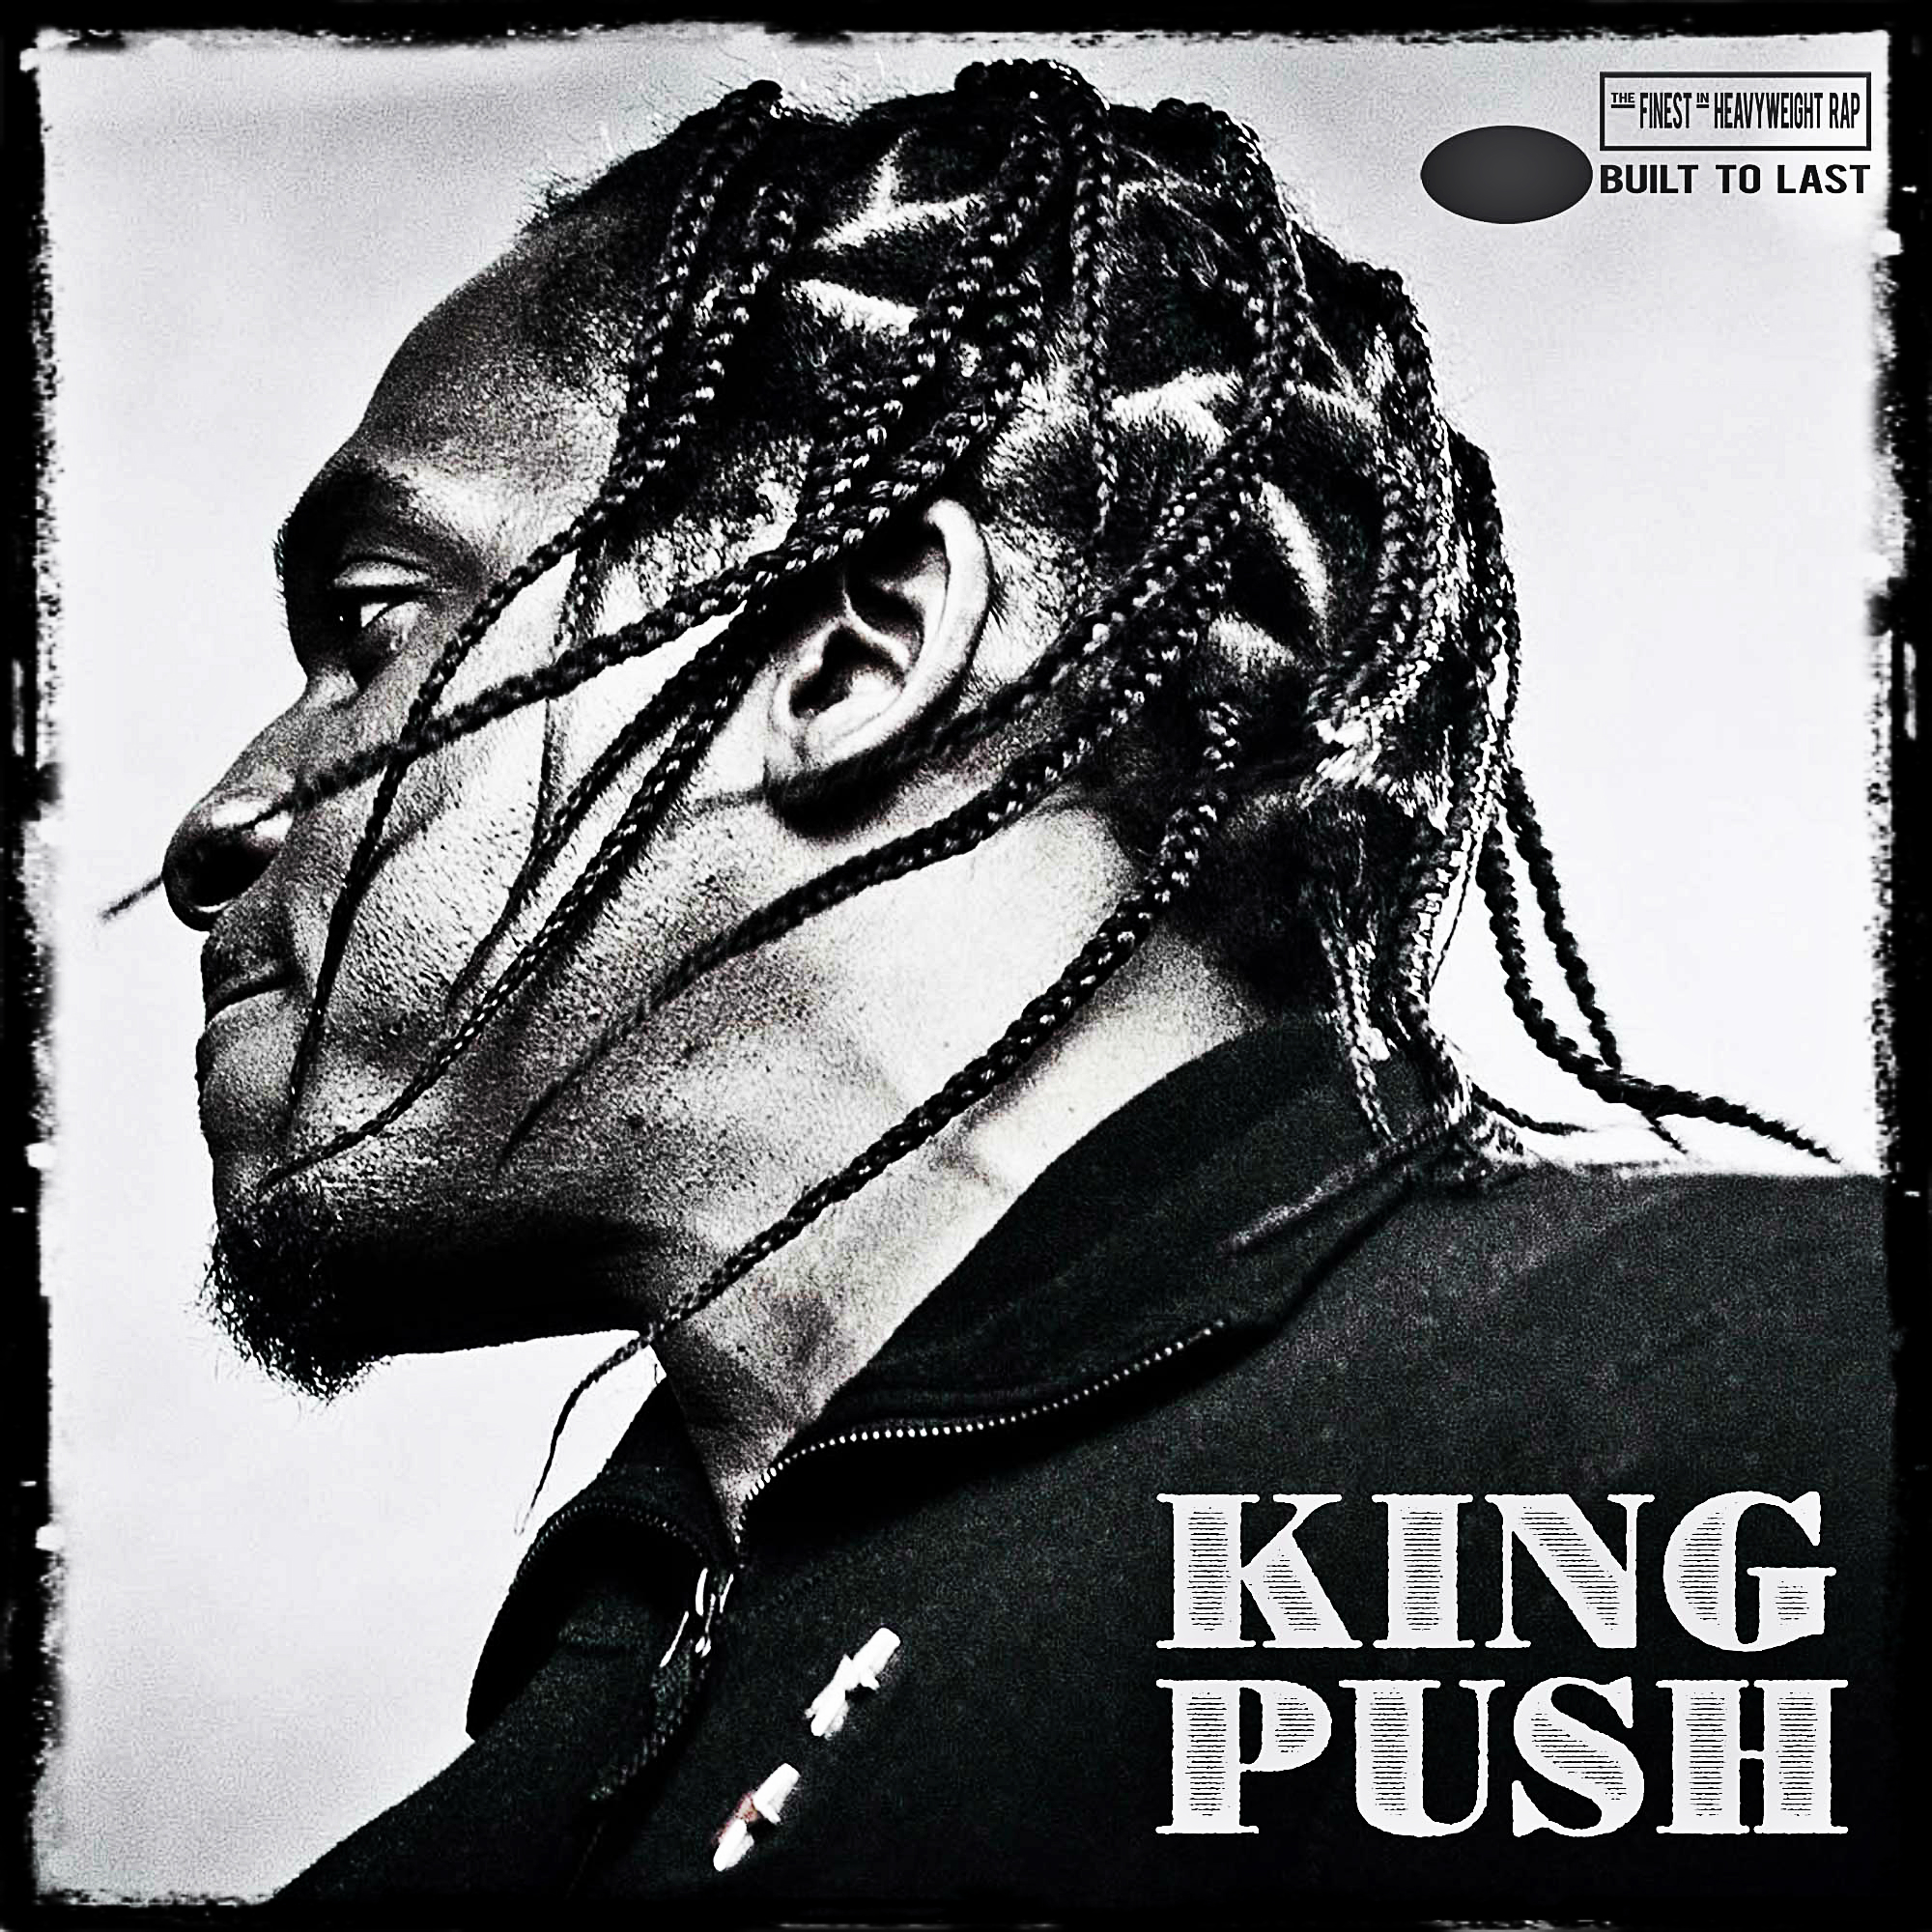 PUSHA T - Built To Last Mix